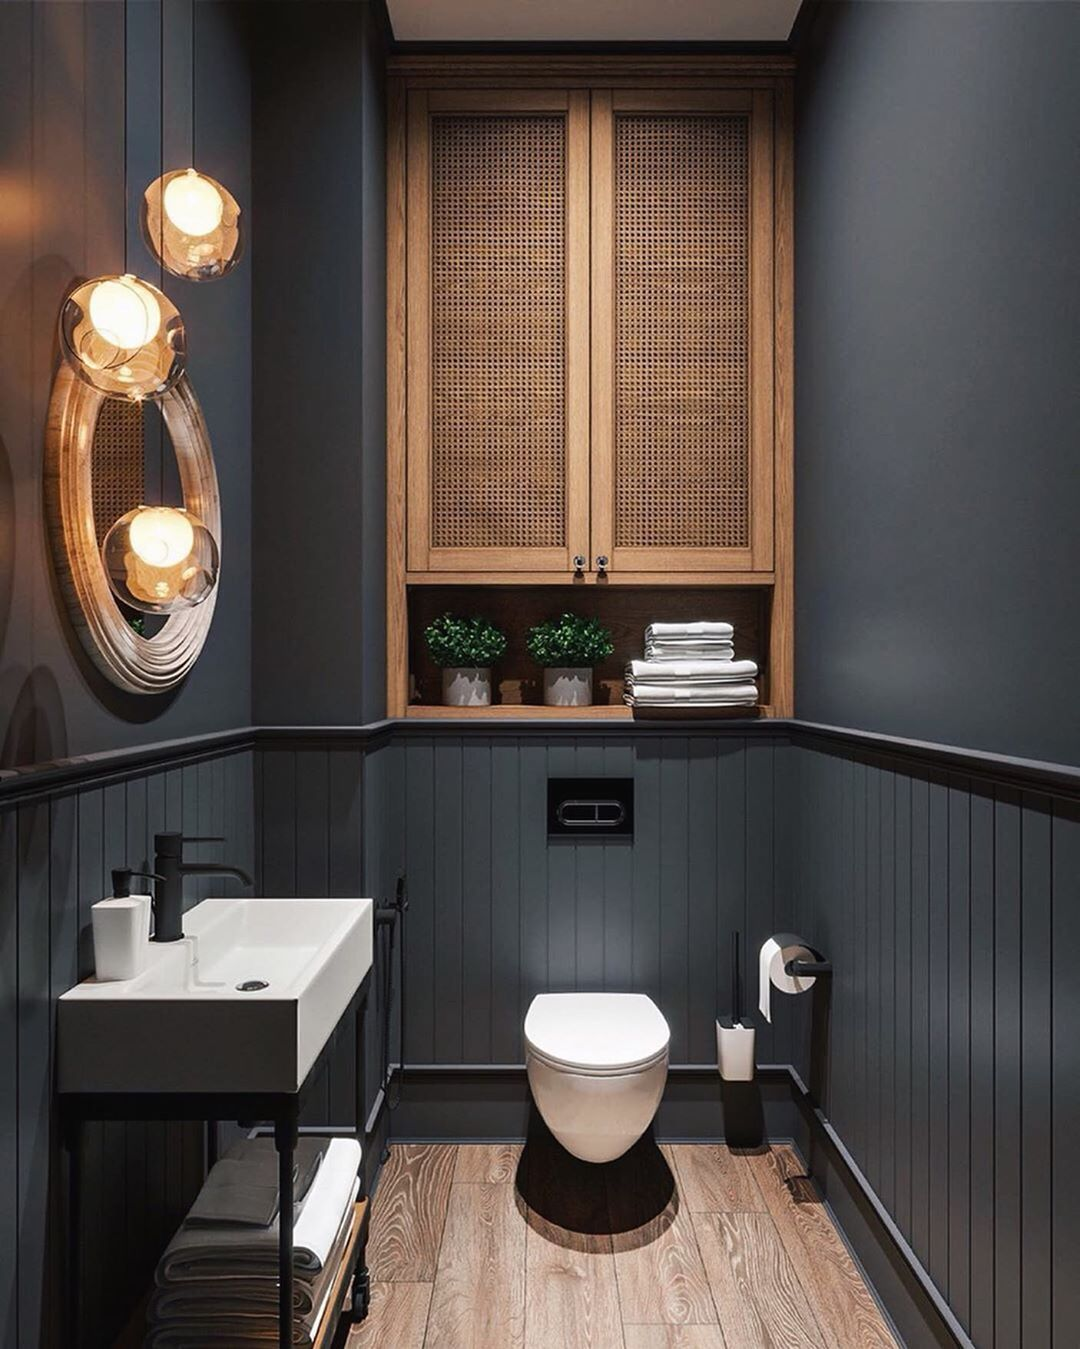 Find Here Some Special Colors For Bathrooms And See Your Whole Bathroom Transform Into A Great Bathroom Colors Bathroom Inspiration Modern Bathroom Inspiration Famous inspiration bathroom color